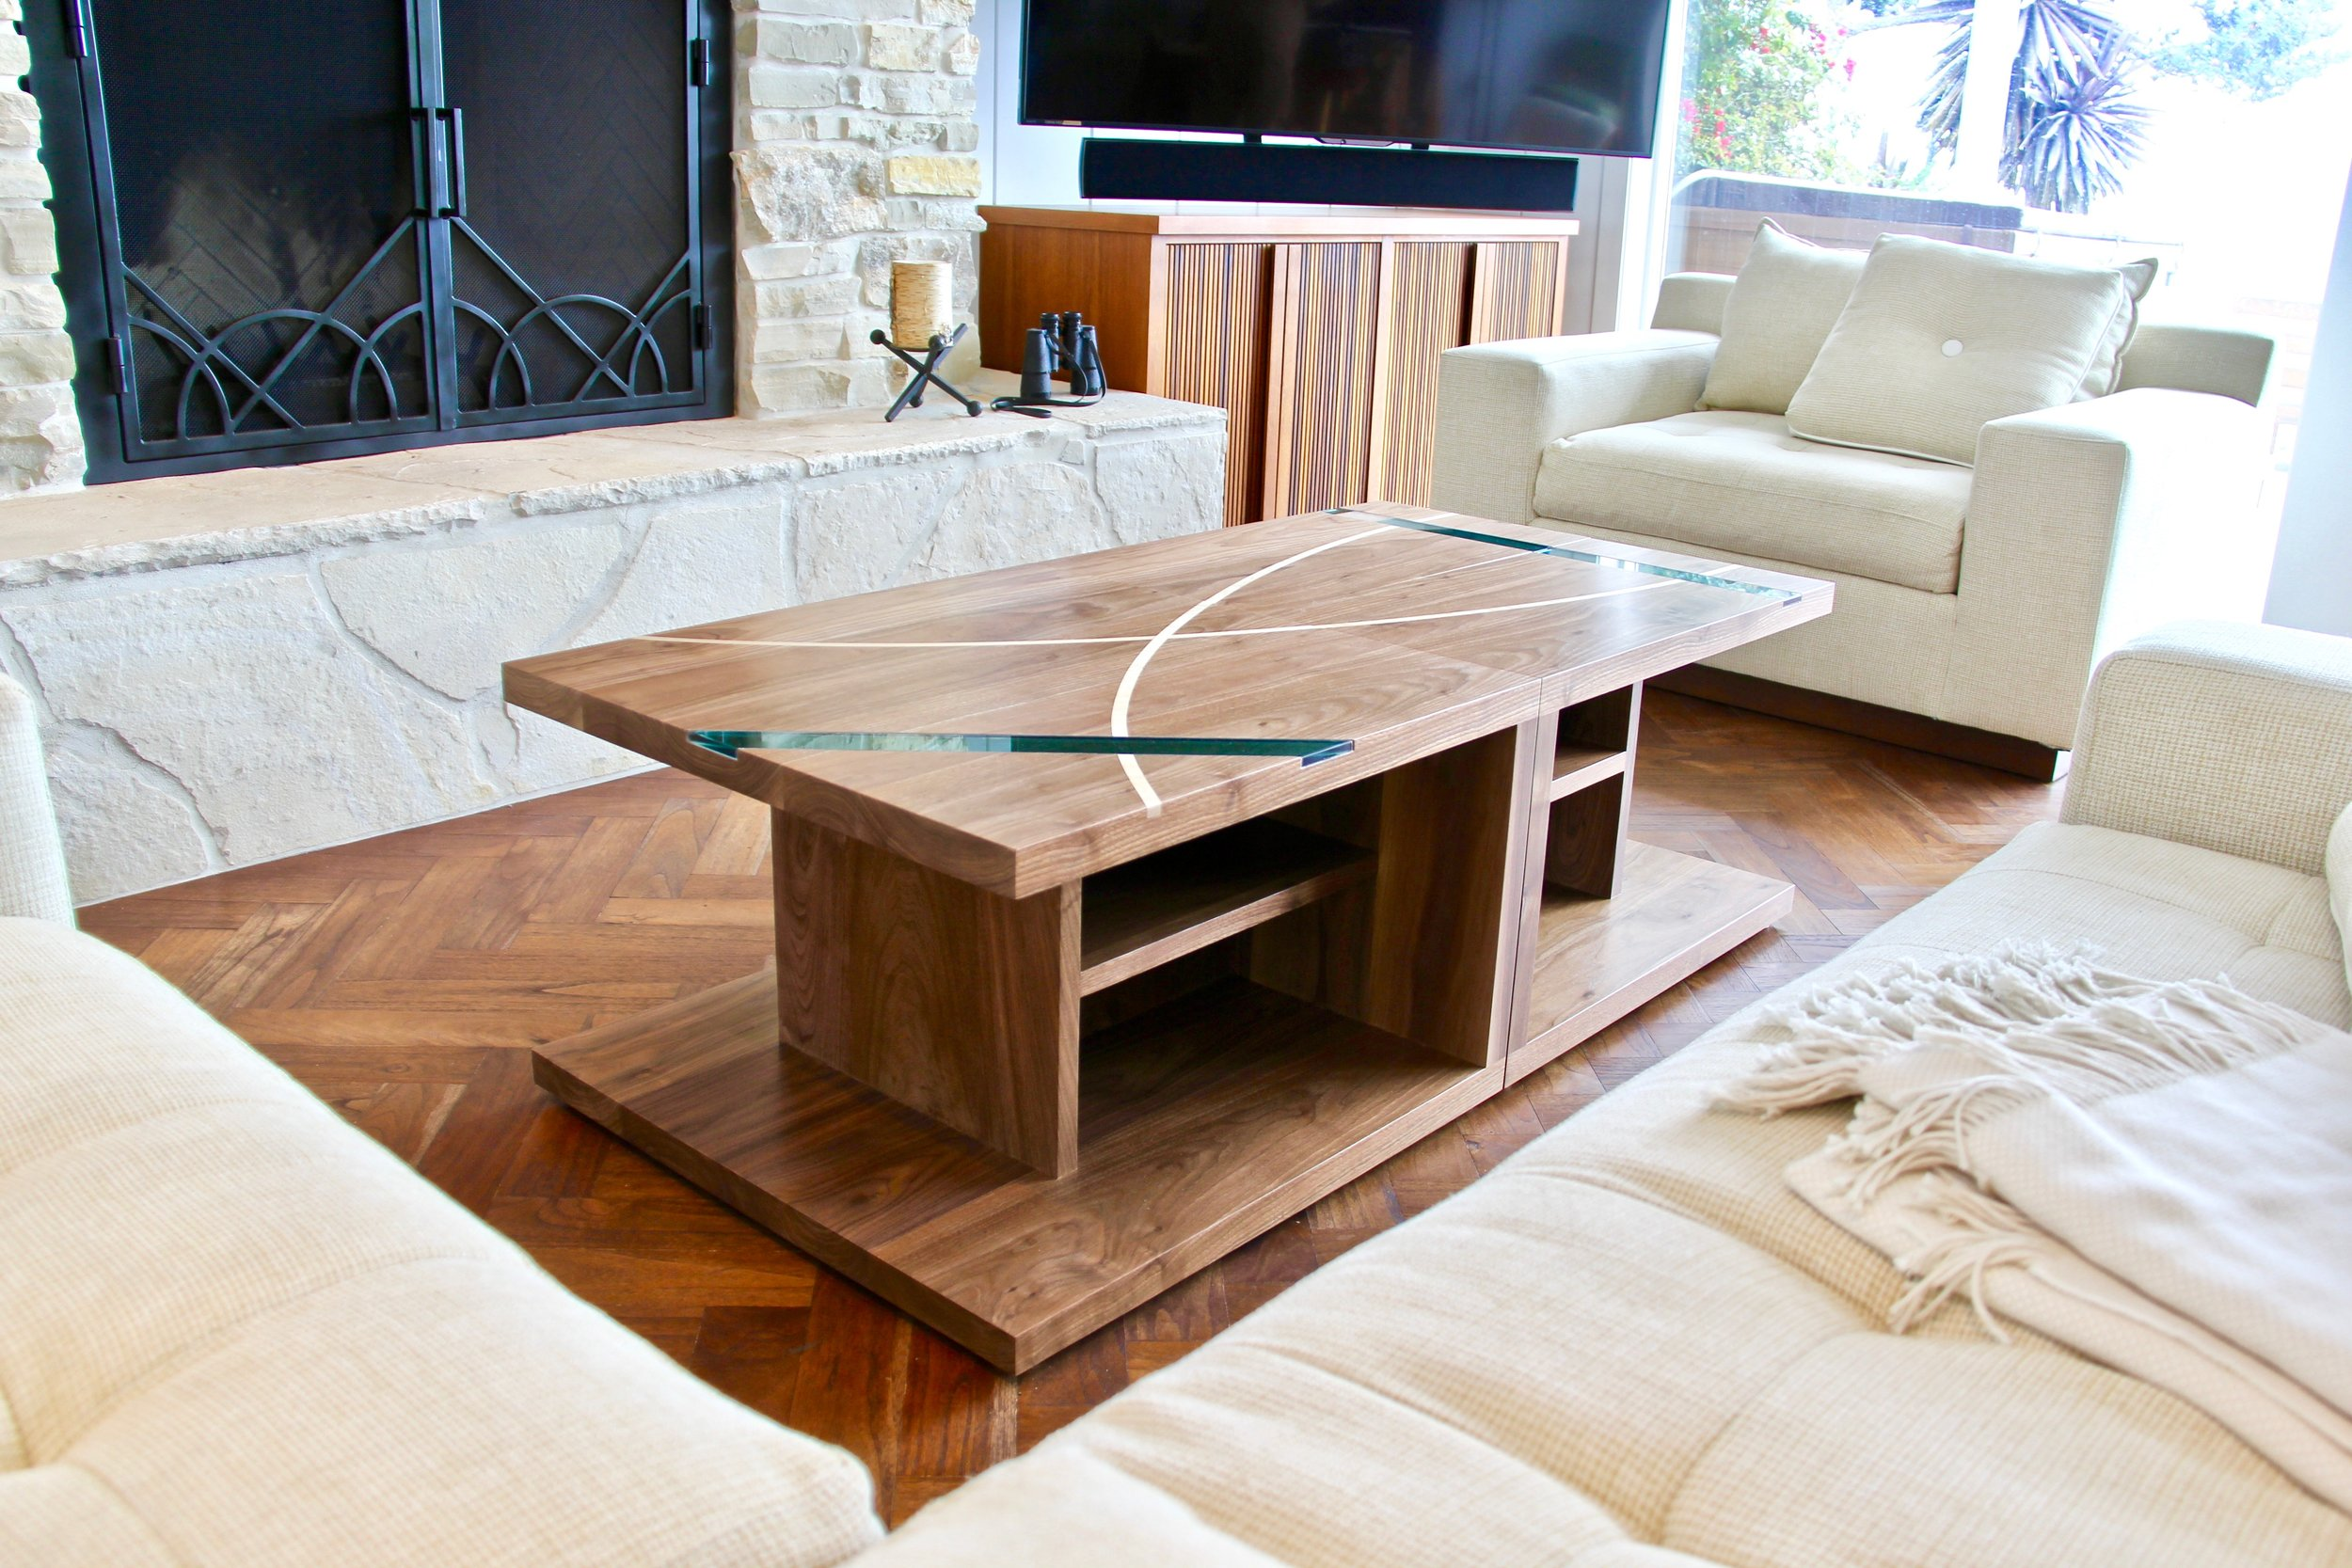 Triptych Tables - with Maple and Glass Inlays